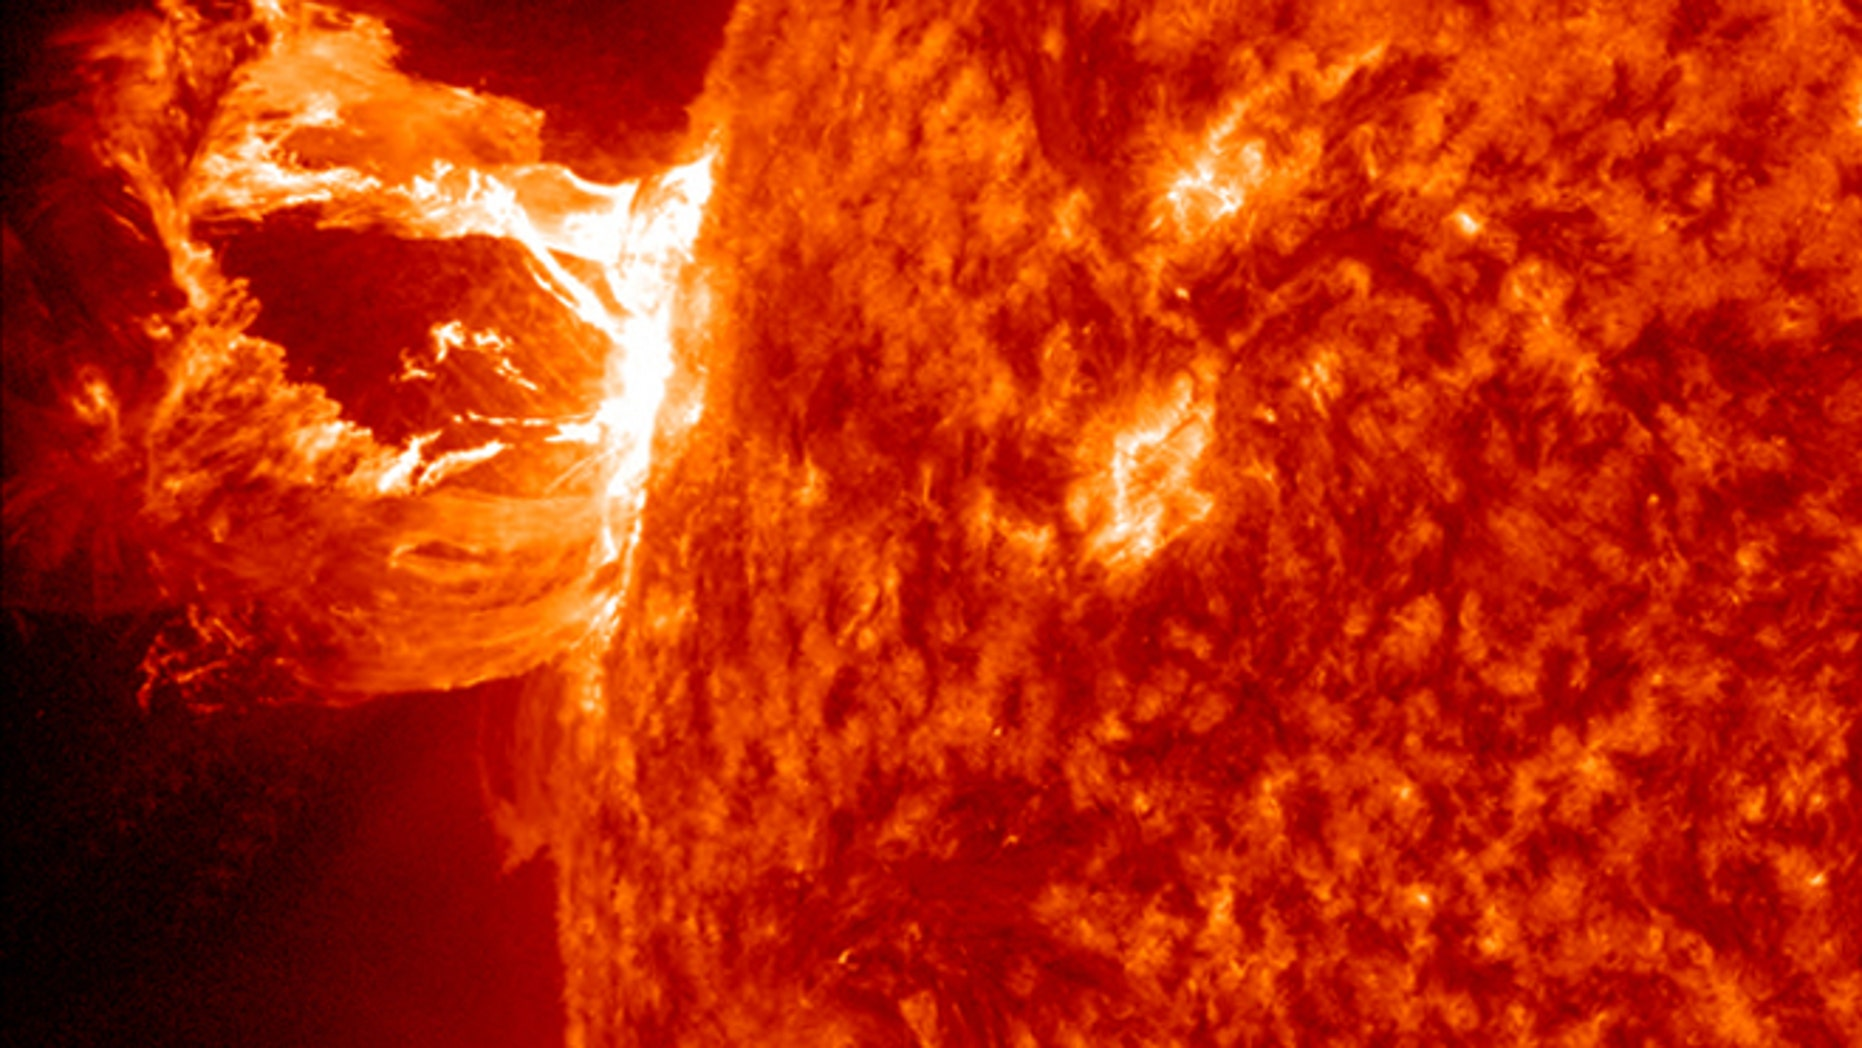 Apr. 16, 2012: A beautiful prominence eruption shot off the east limb (left side) of the sun on Monday. This view of the flare was recorded by NASA's Solar Dynamics Observatory.